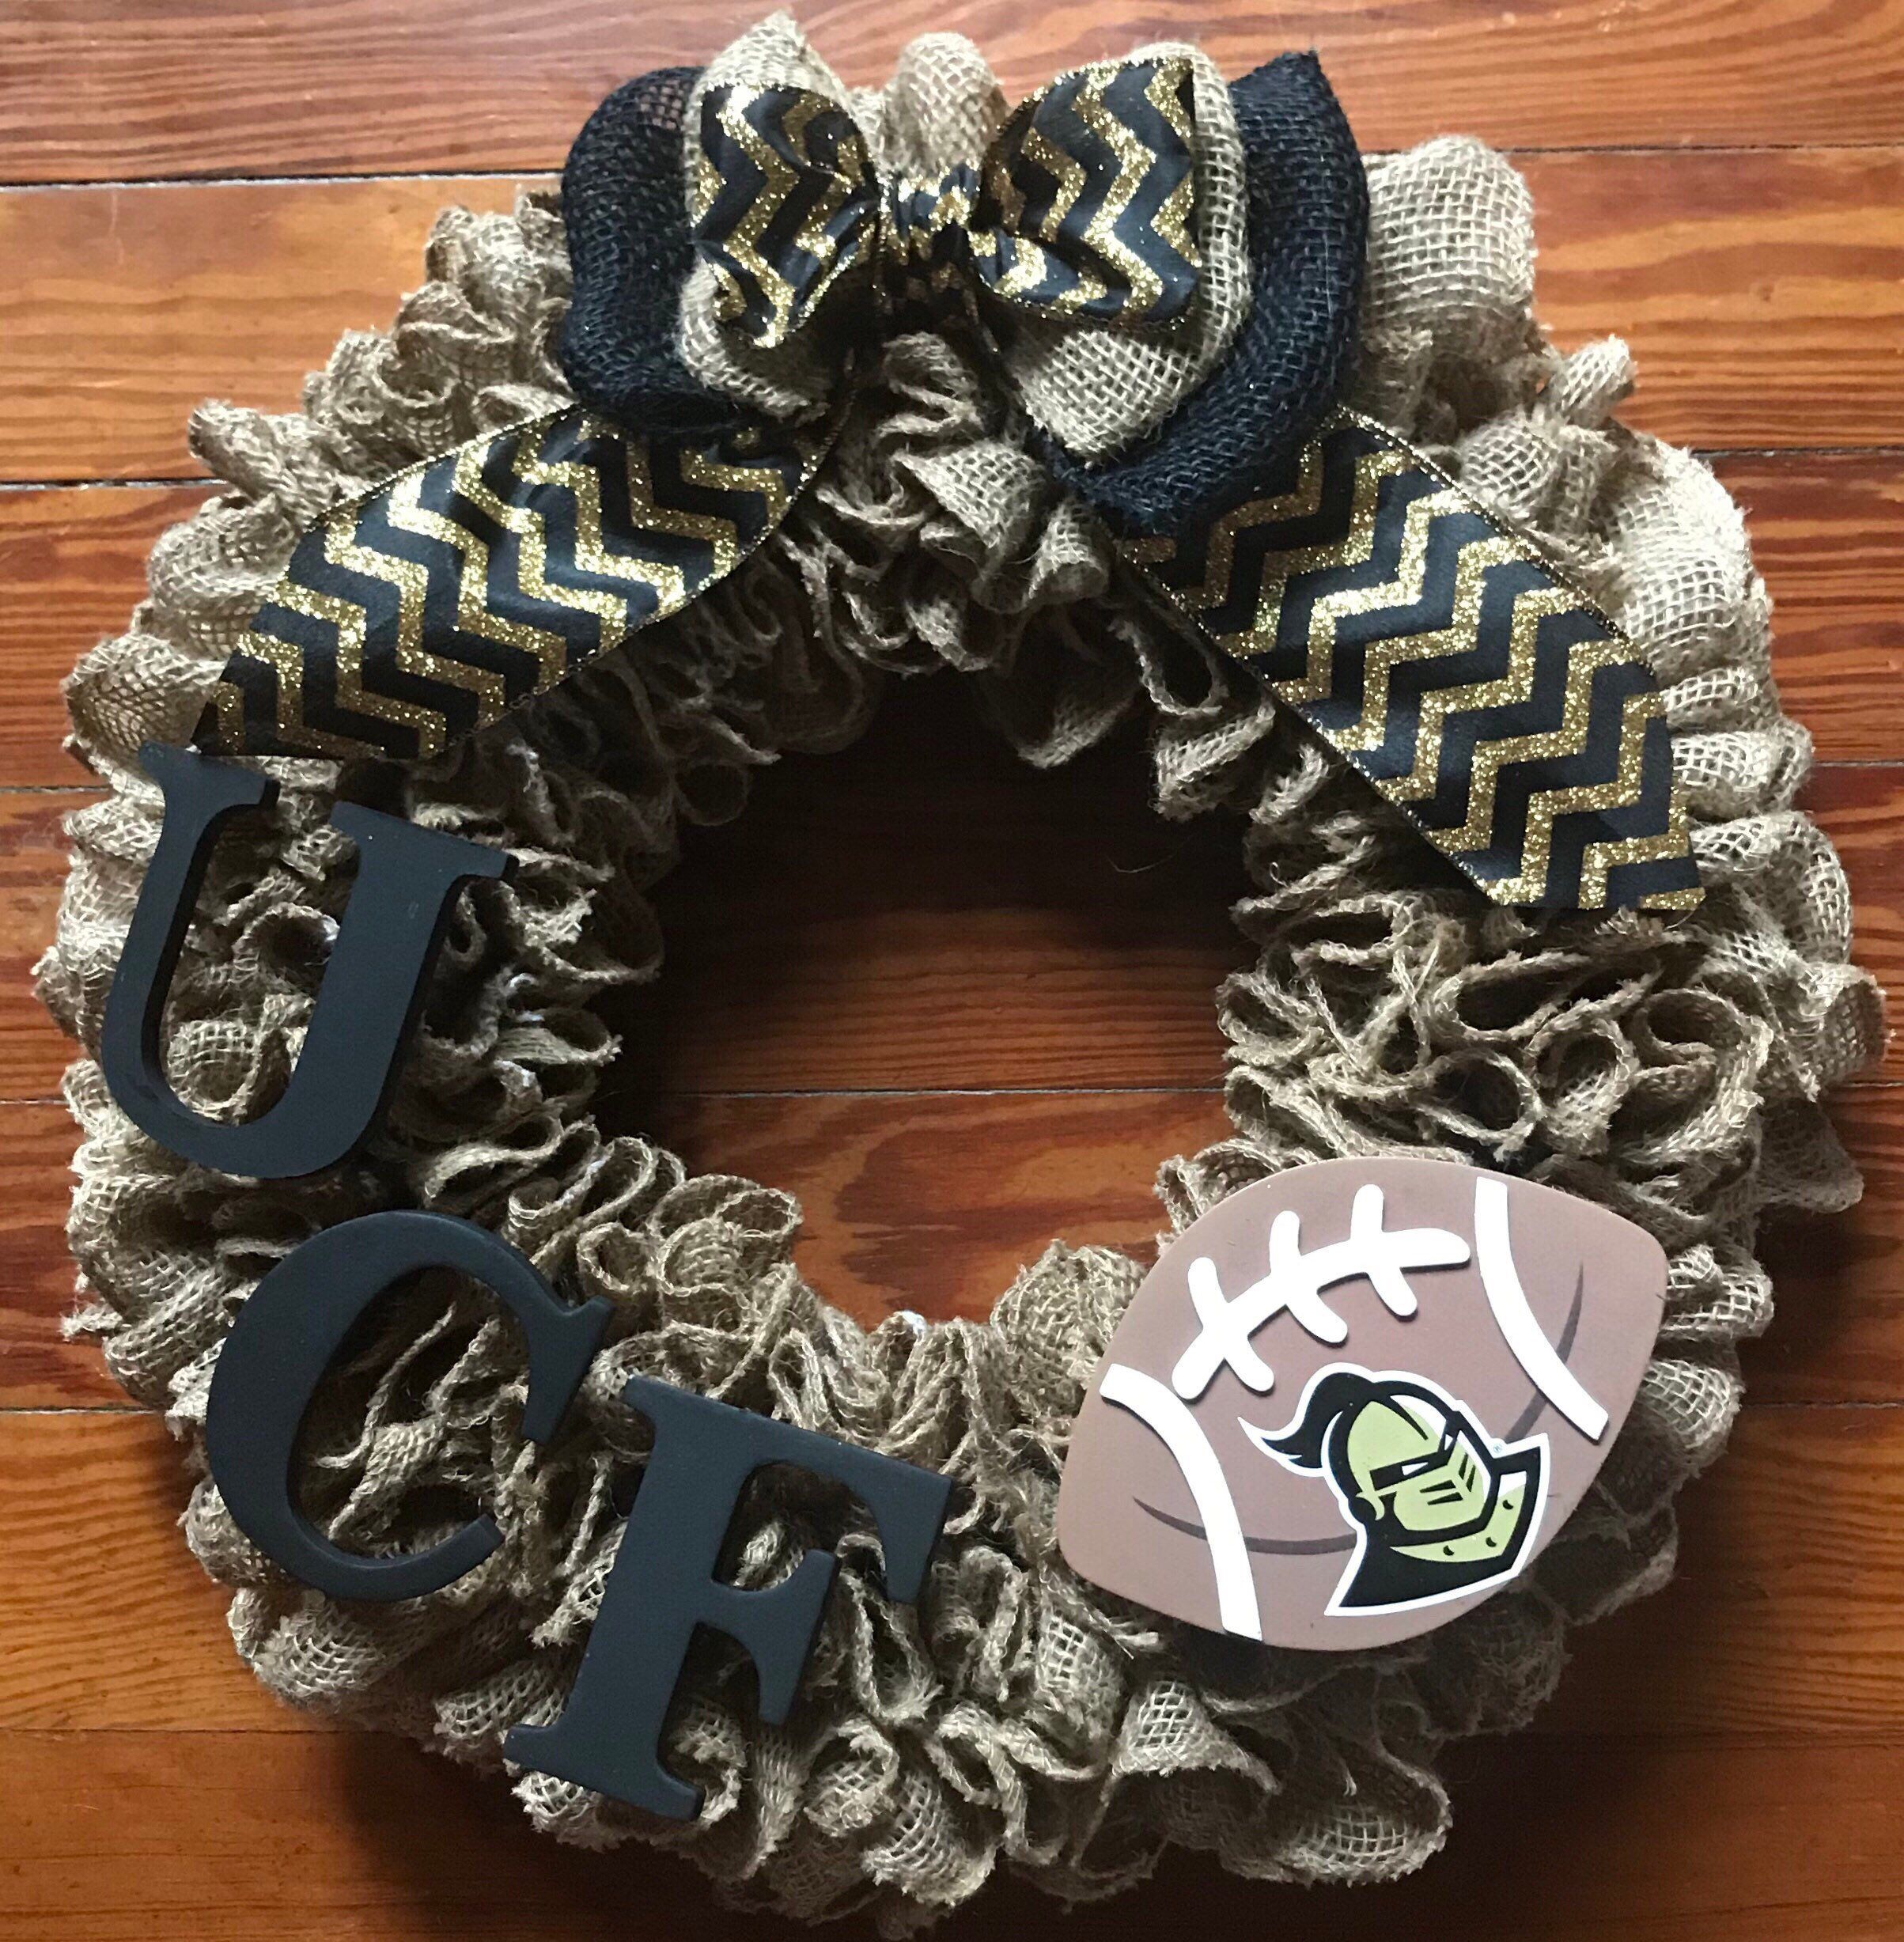 SEC college football university of central florida college gift UCF knight UCF Wreath burlap wreath knight wreath